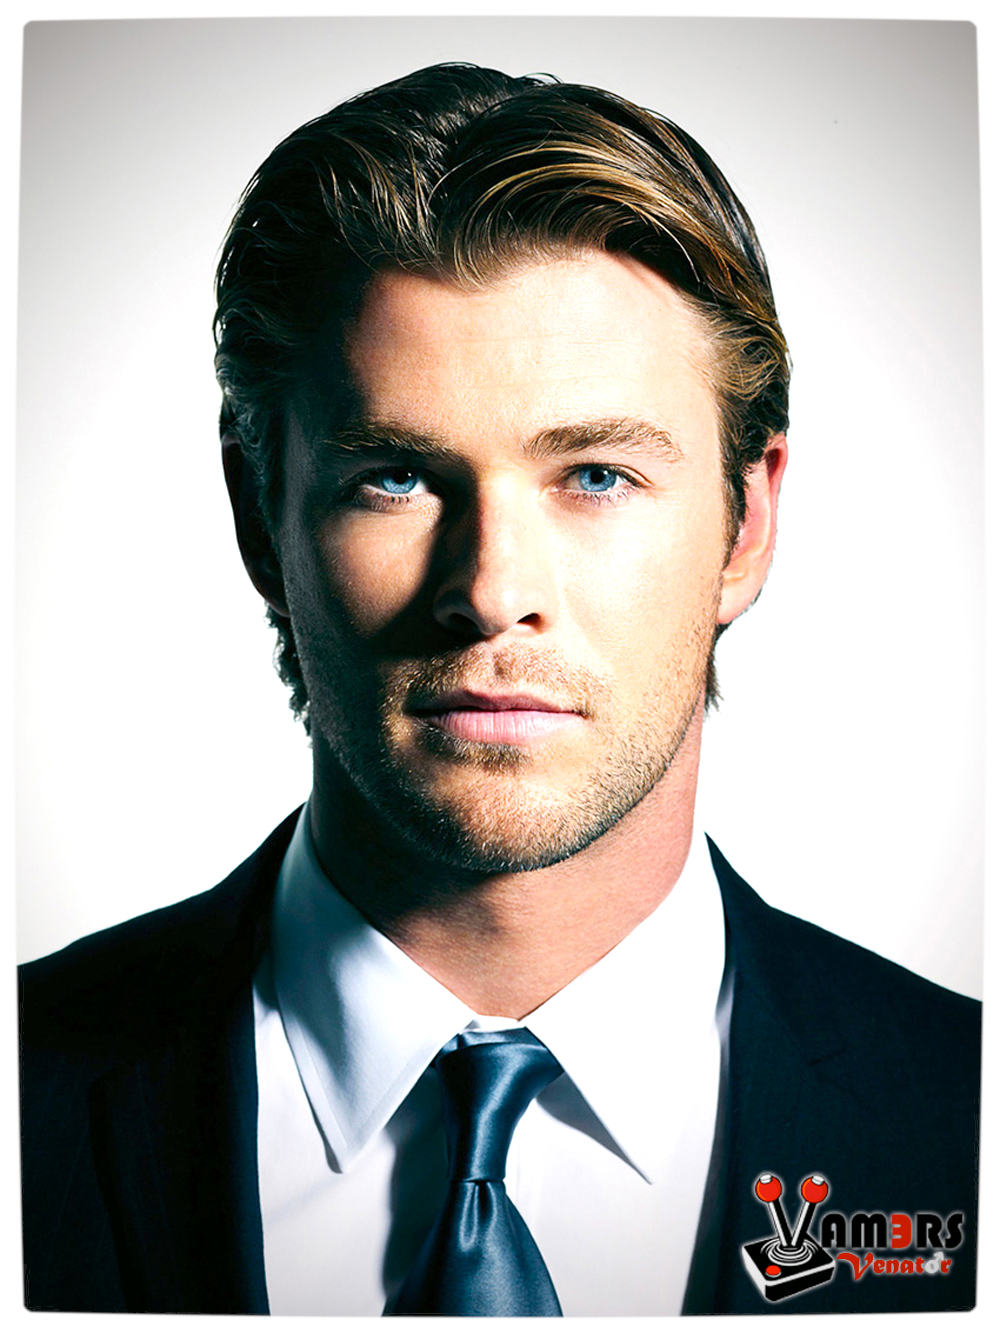 Vamers Venator for September 2013: Chris Hemsworth